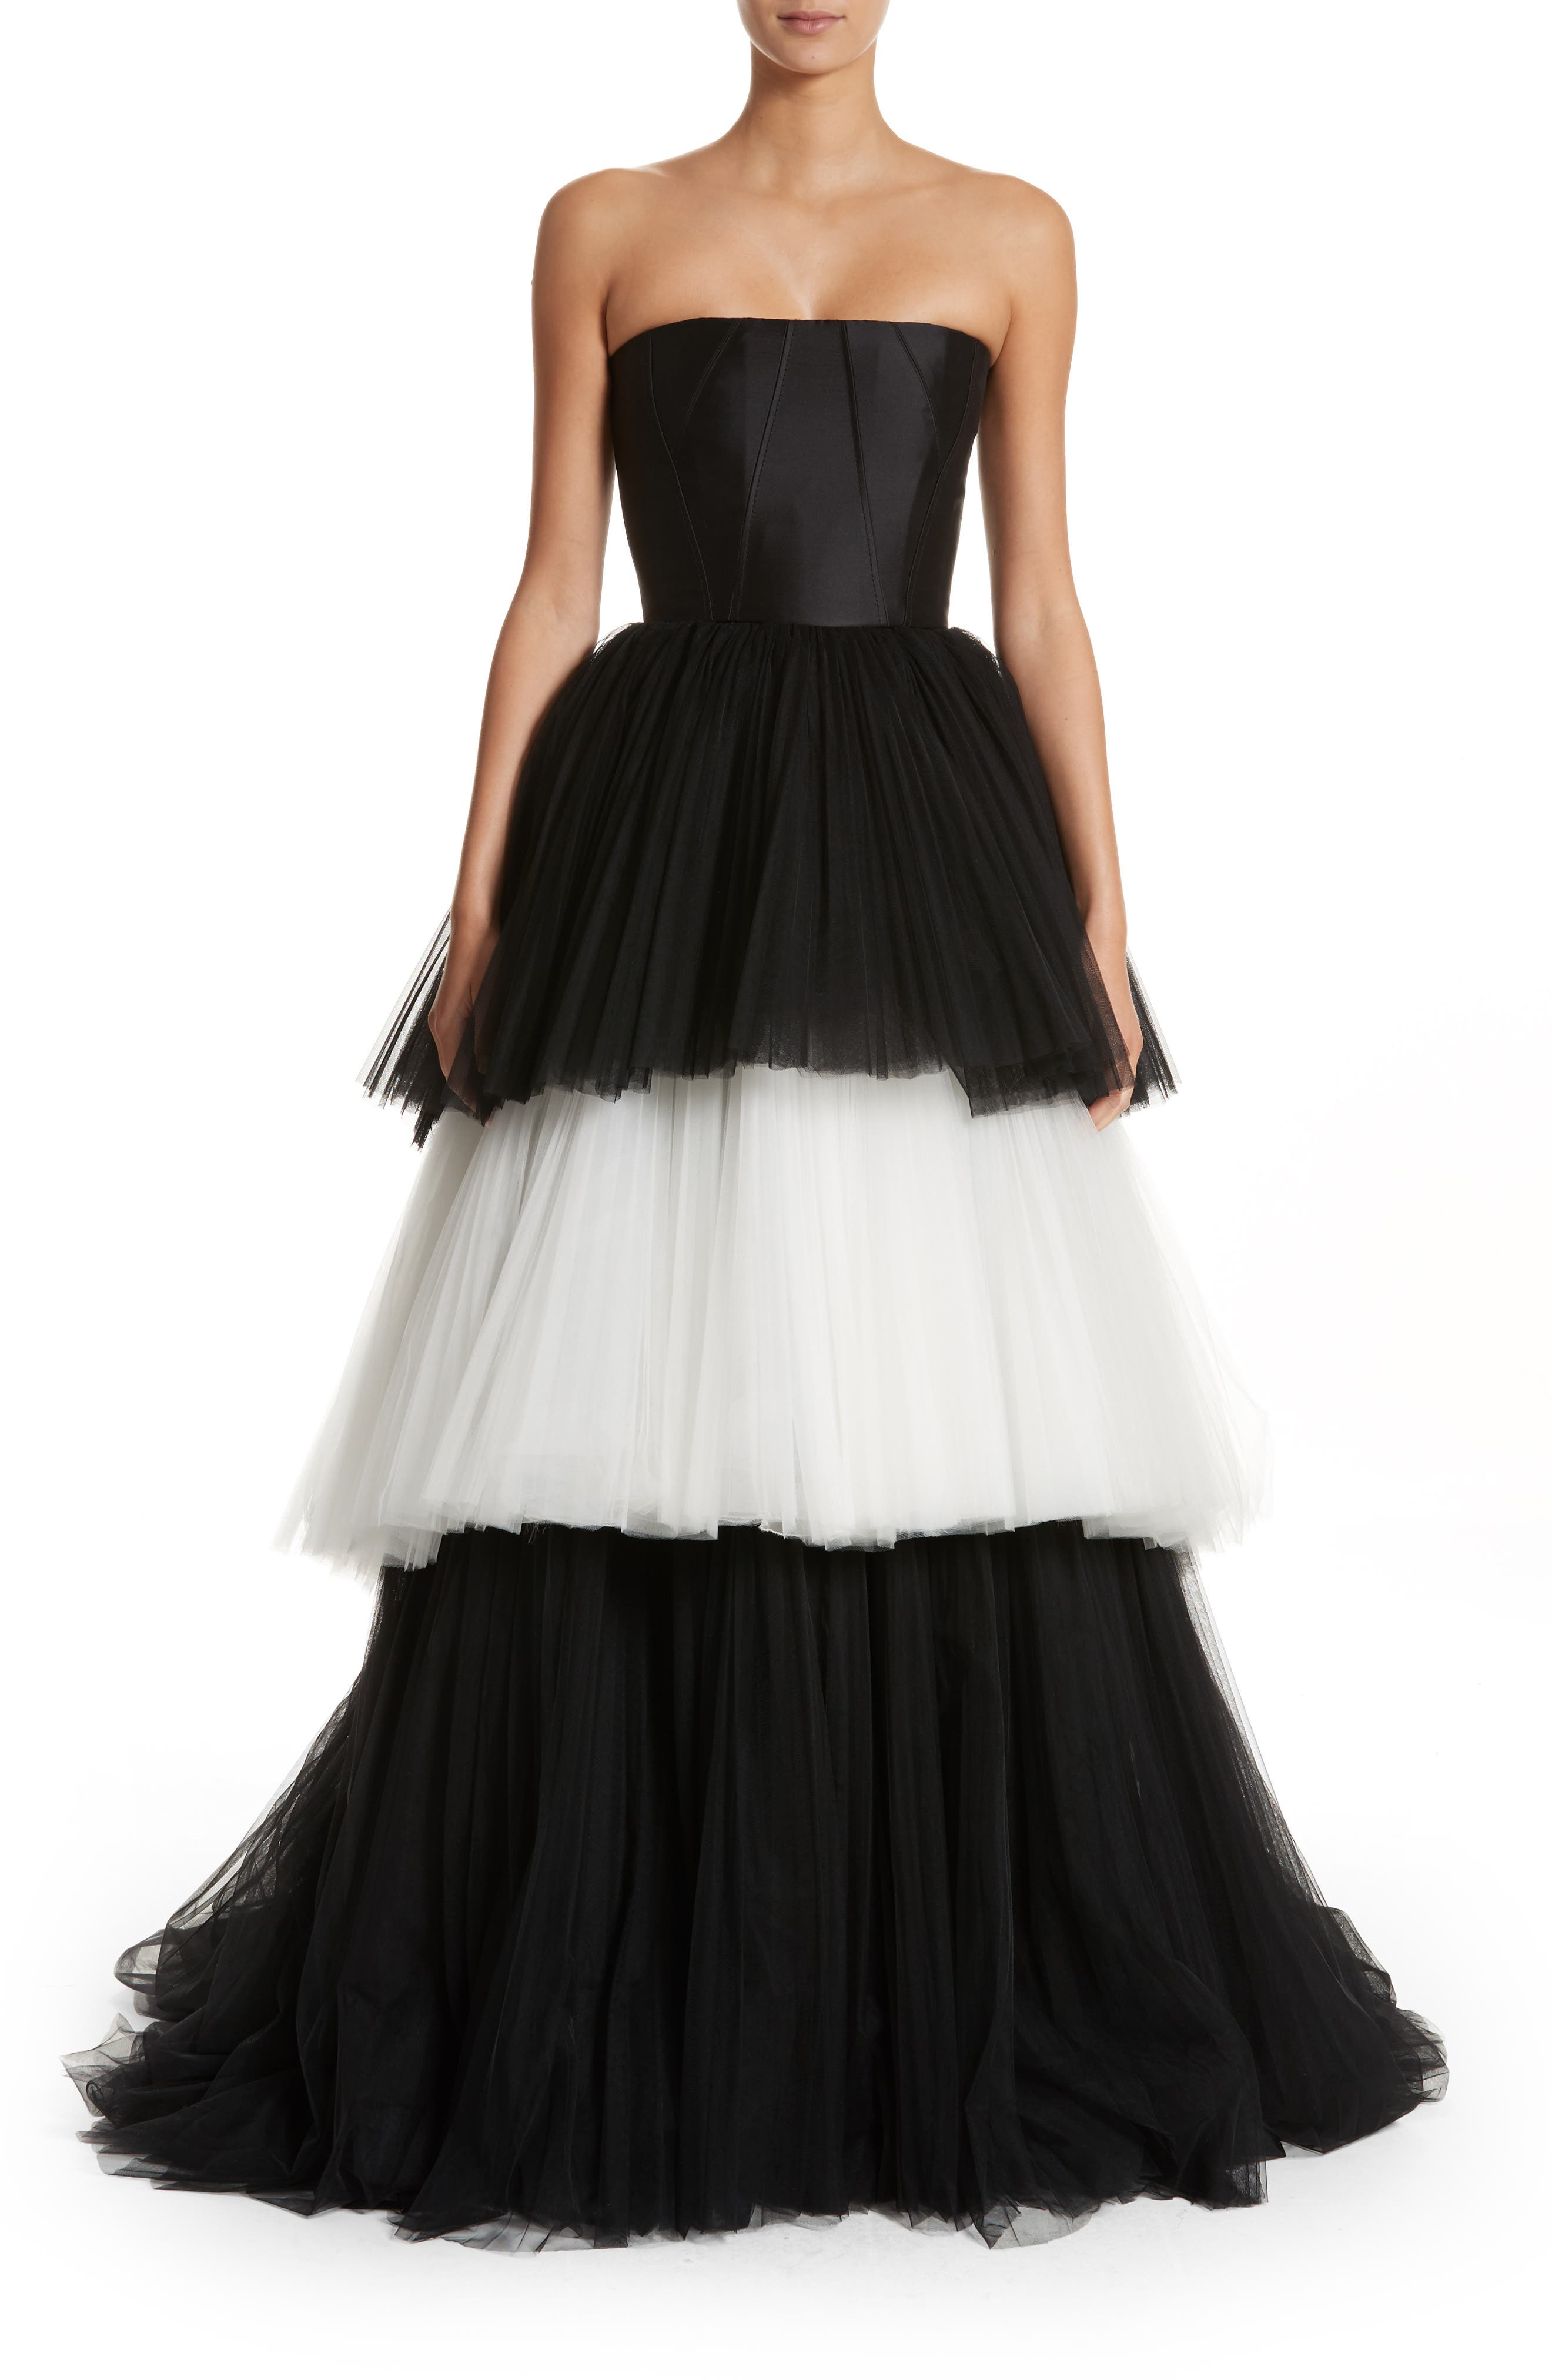 Strapless Layered Tulle Gown,                             Main thumbnail 1, color,                             Black/White